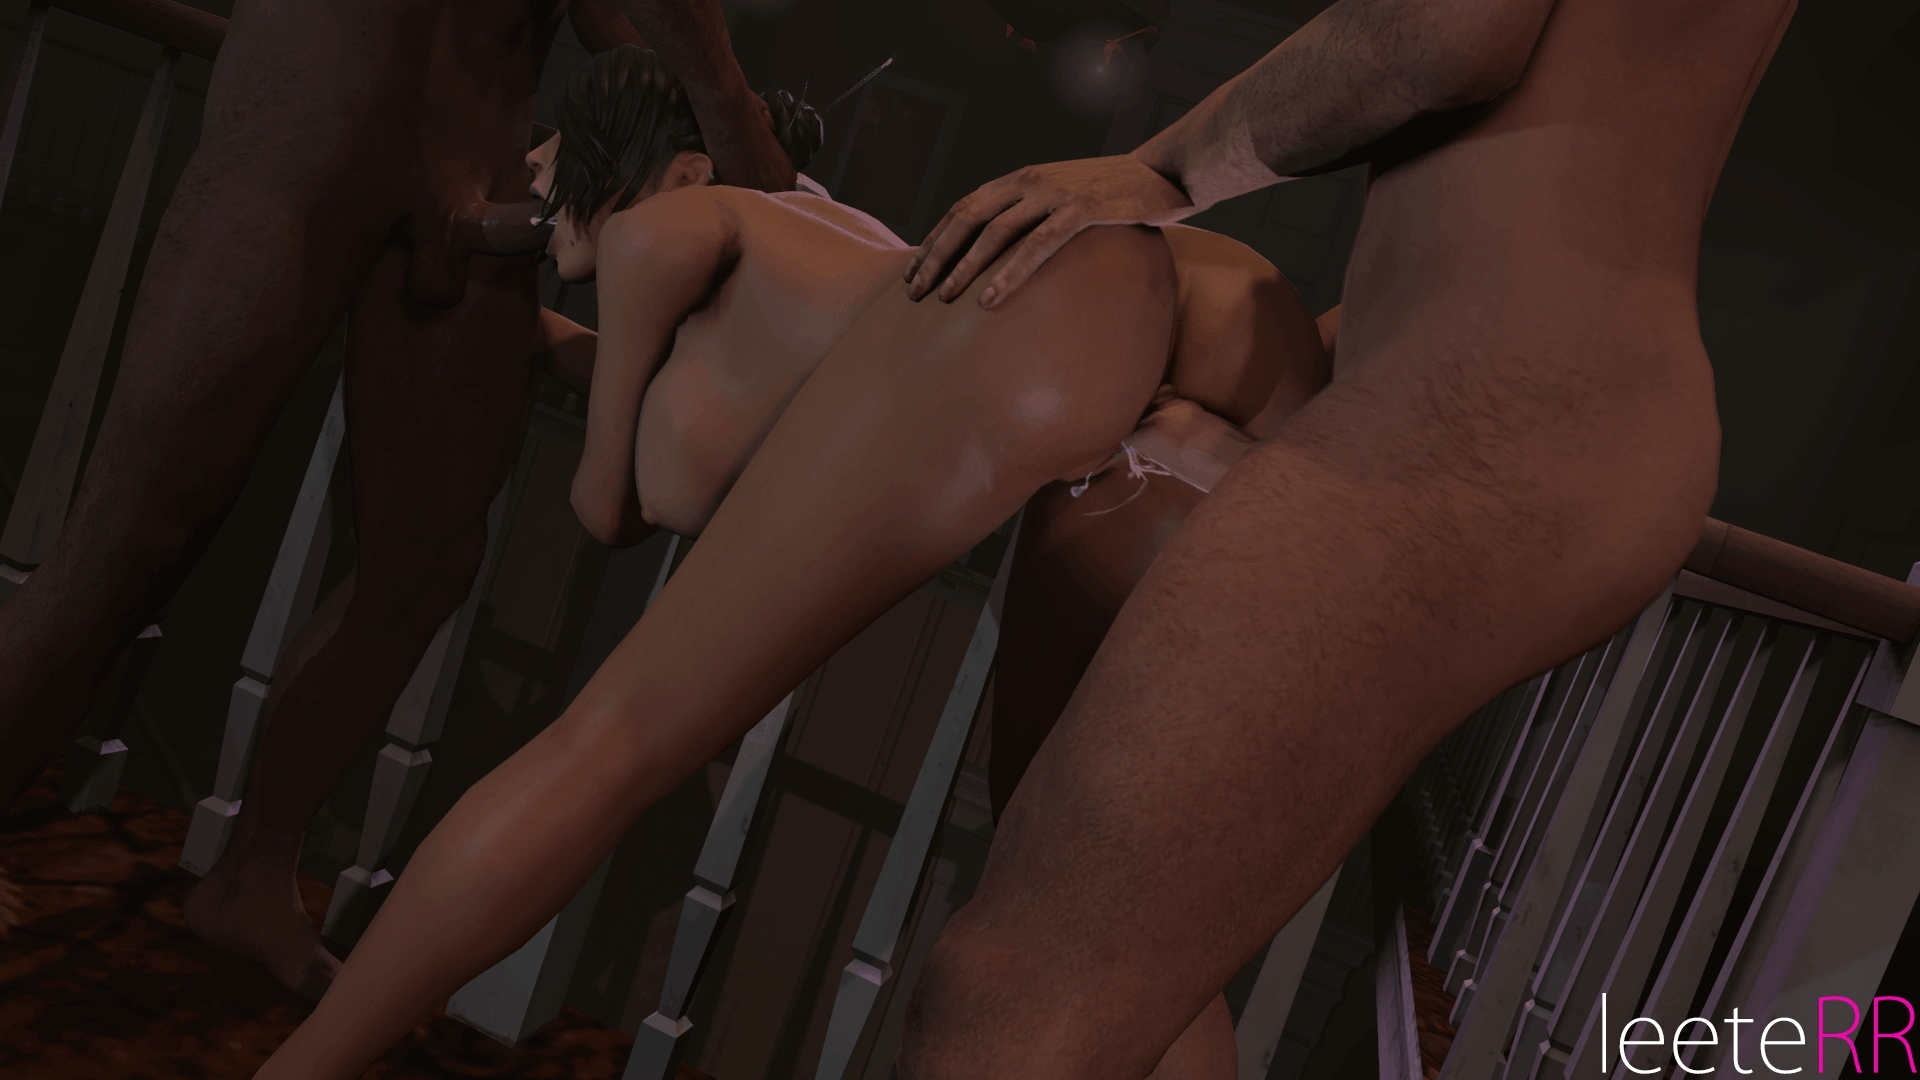 Gifs de sexo 3d anime pornos exposed gallery